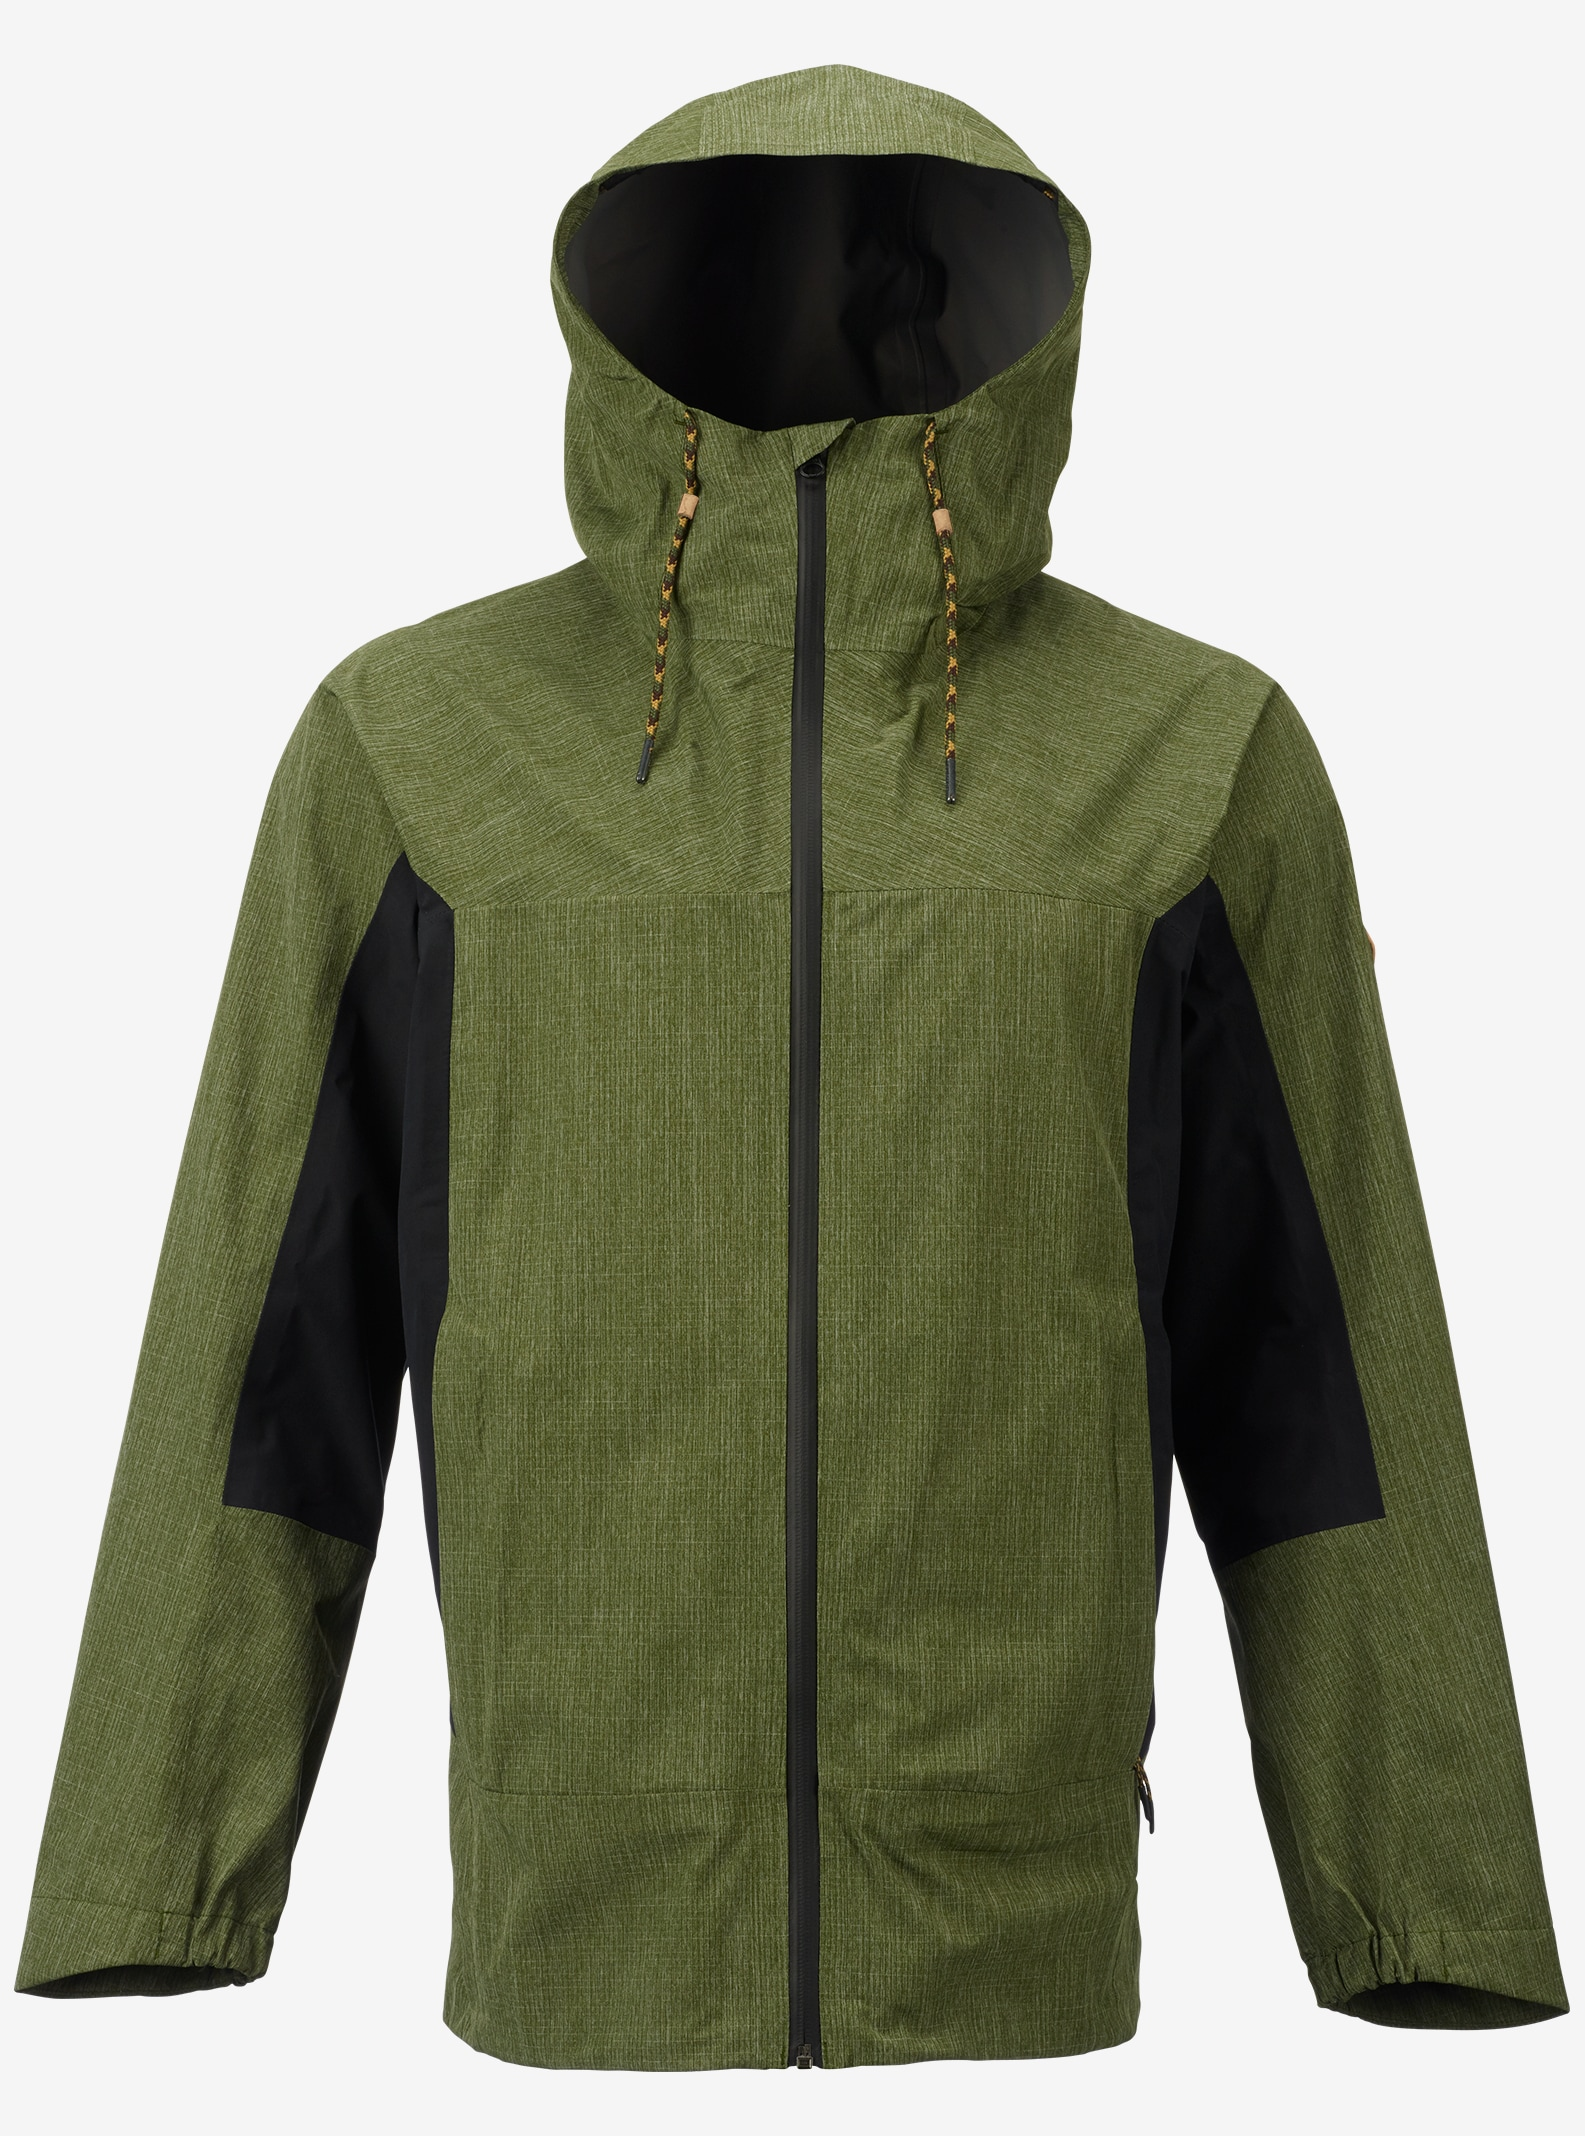 Burton GORE-TEX® 2L Packrite Rain Jacket shown in Rifle Green / True Black